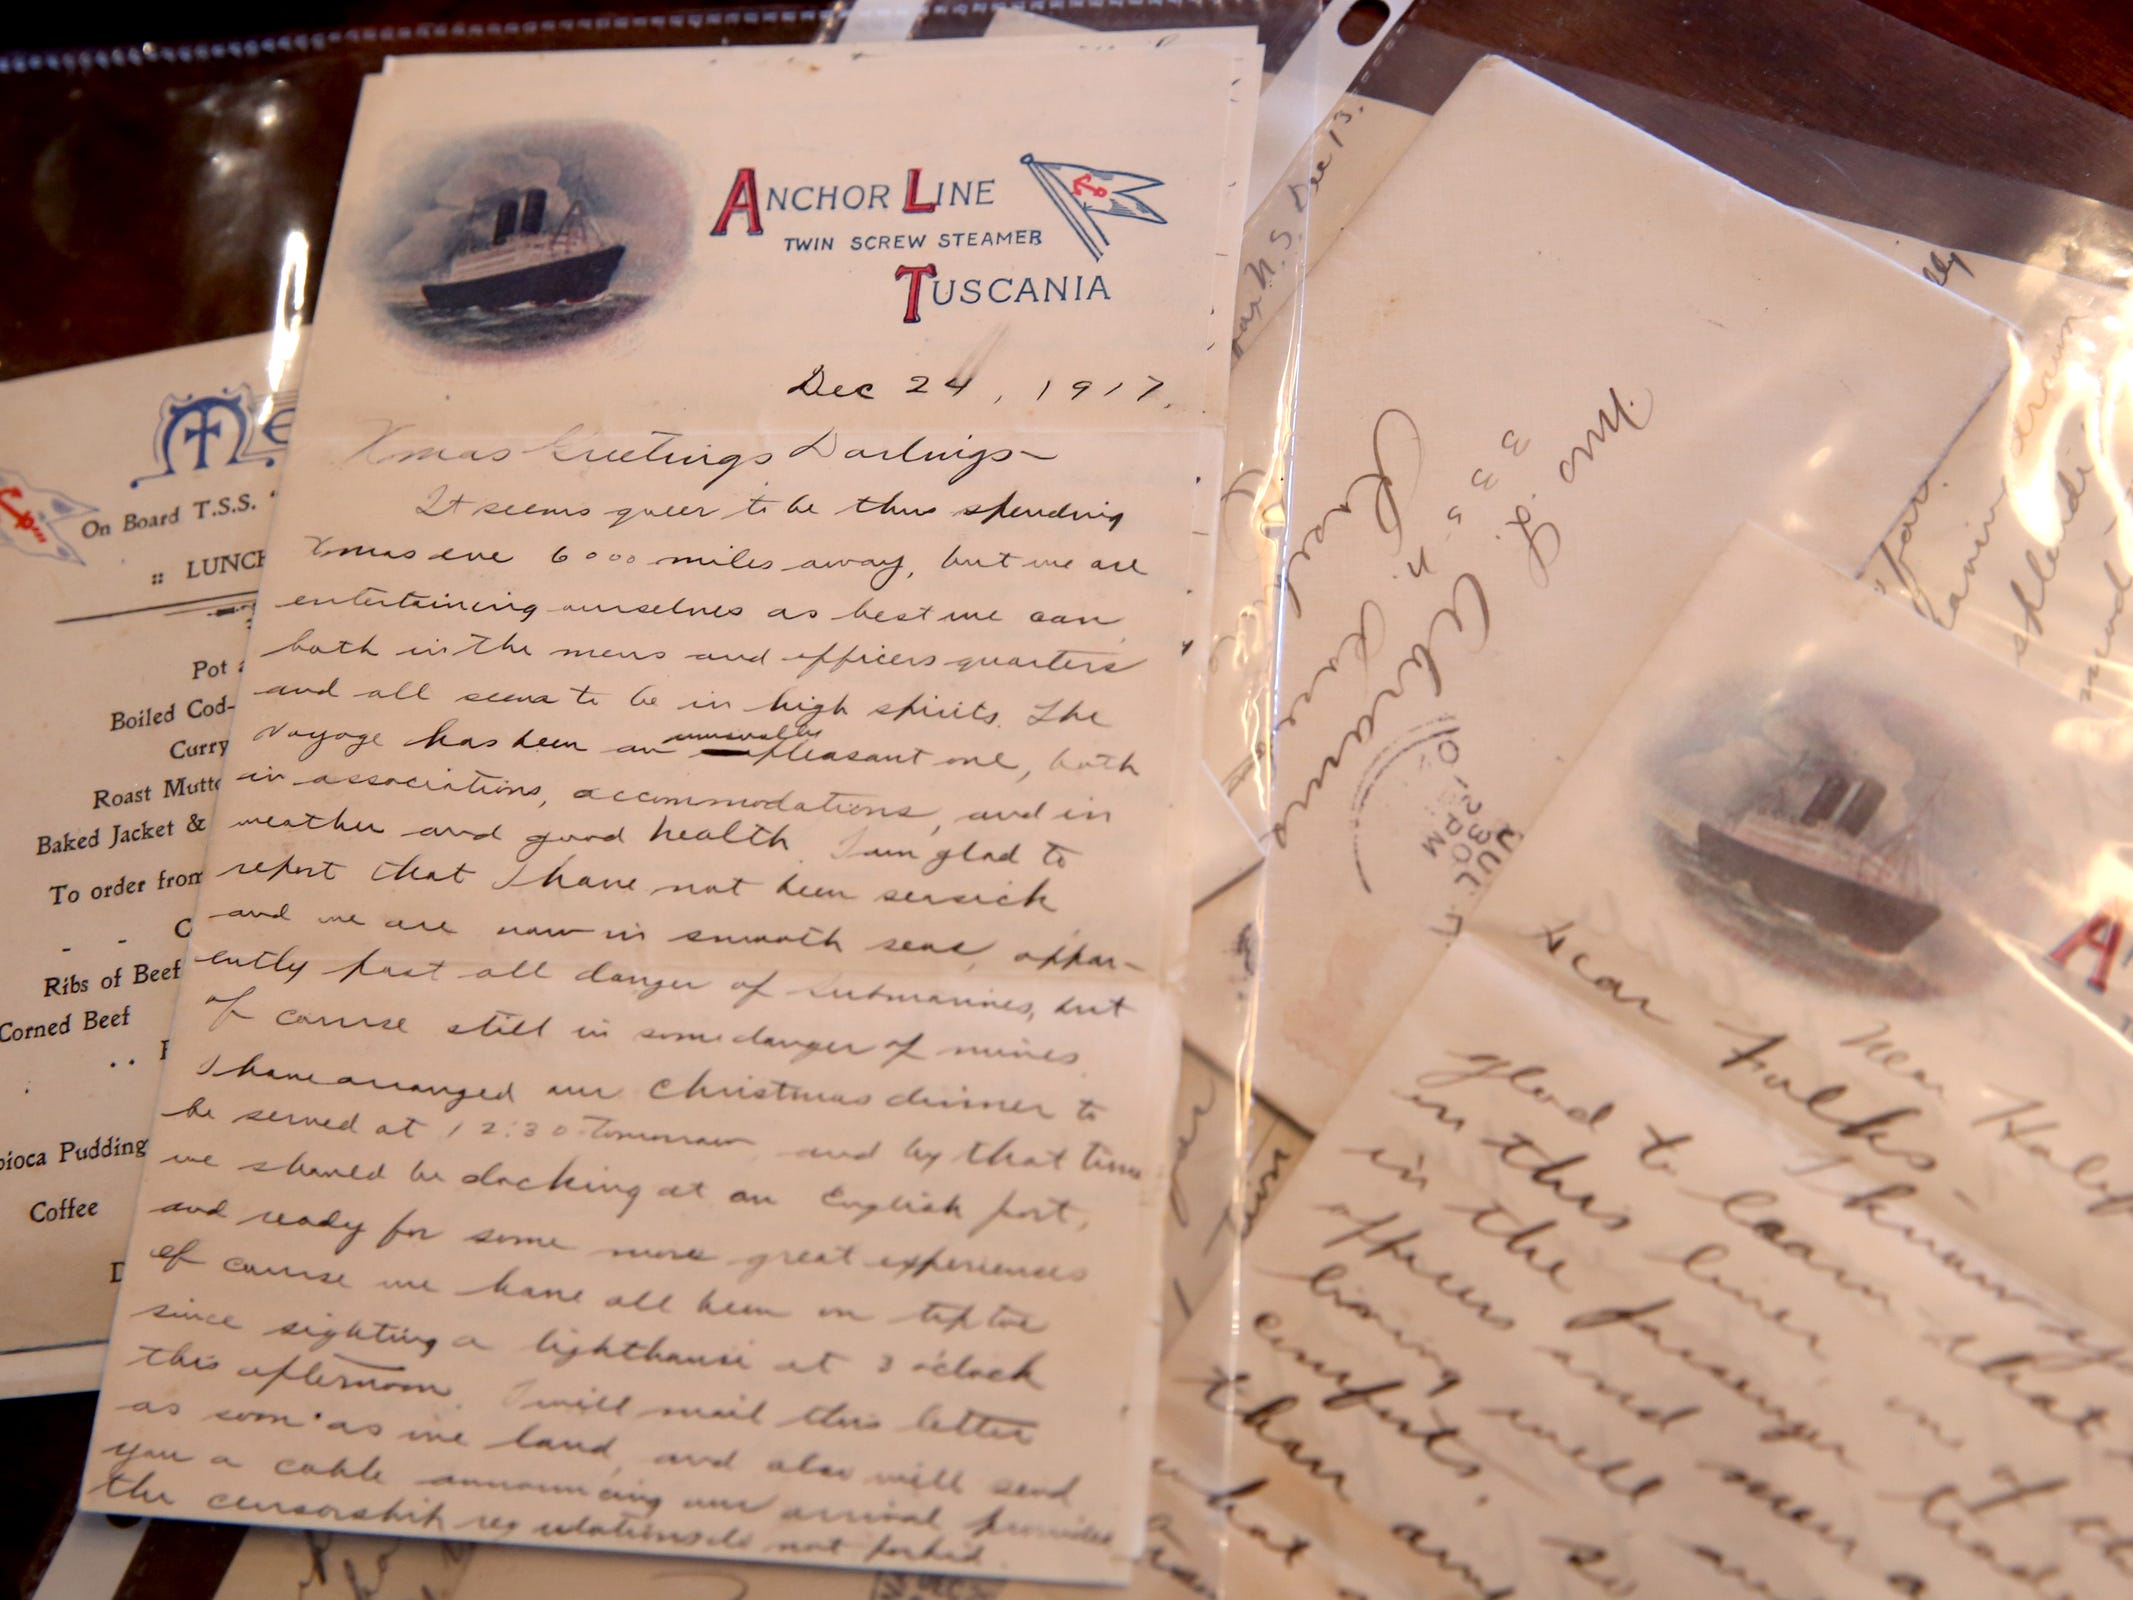 WWI-era letters by Lt. Col. Carle Abrams, the grandfather of Sue Baker. Baker has letters by her grandfather to her grandmother during WWI, including one written on the last day of the war. Photographed at Baler's West Salem home on Monday, Oct. 29, 2018.